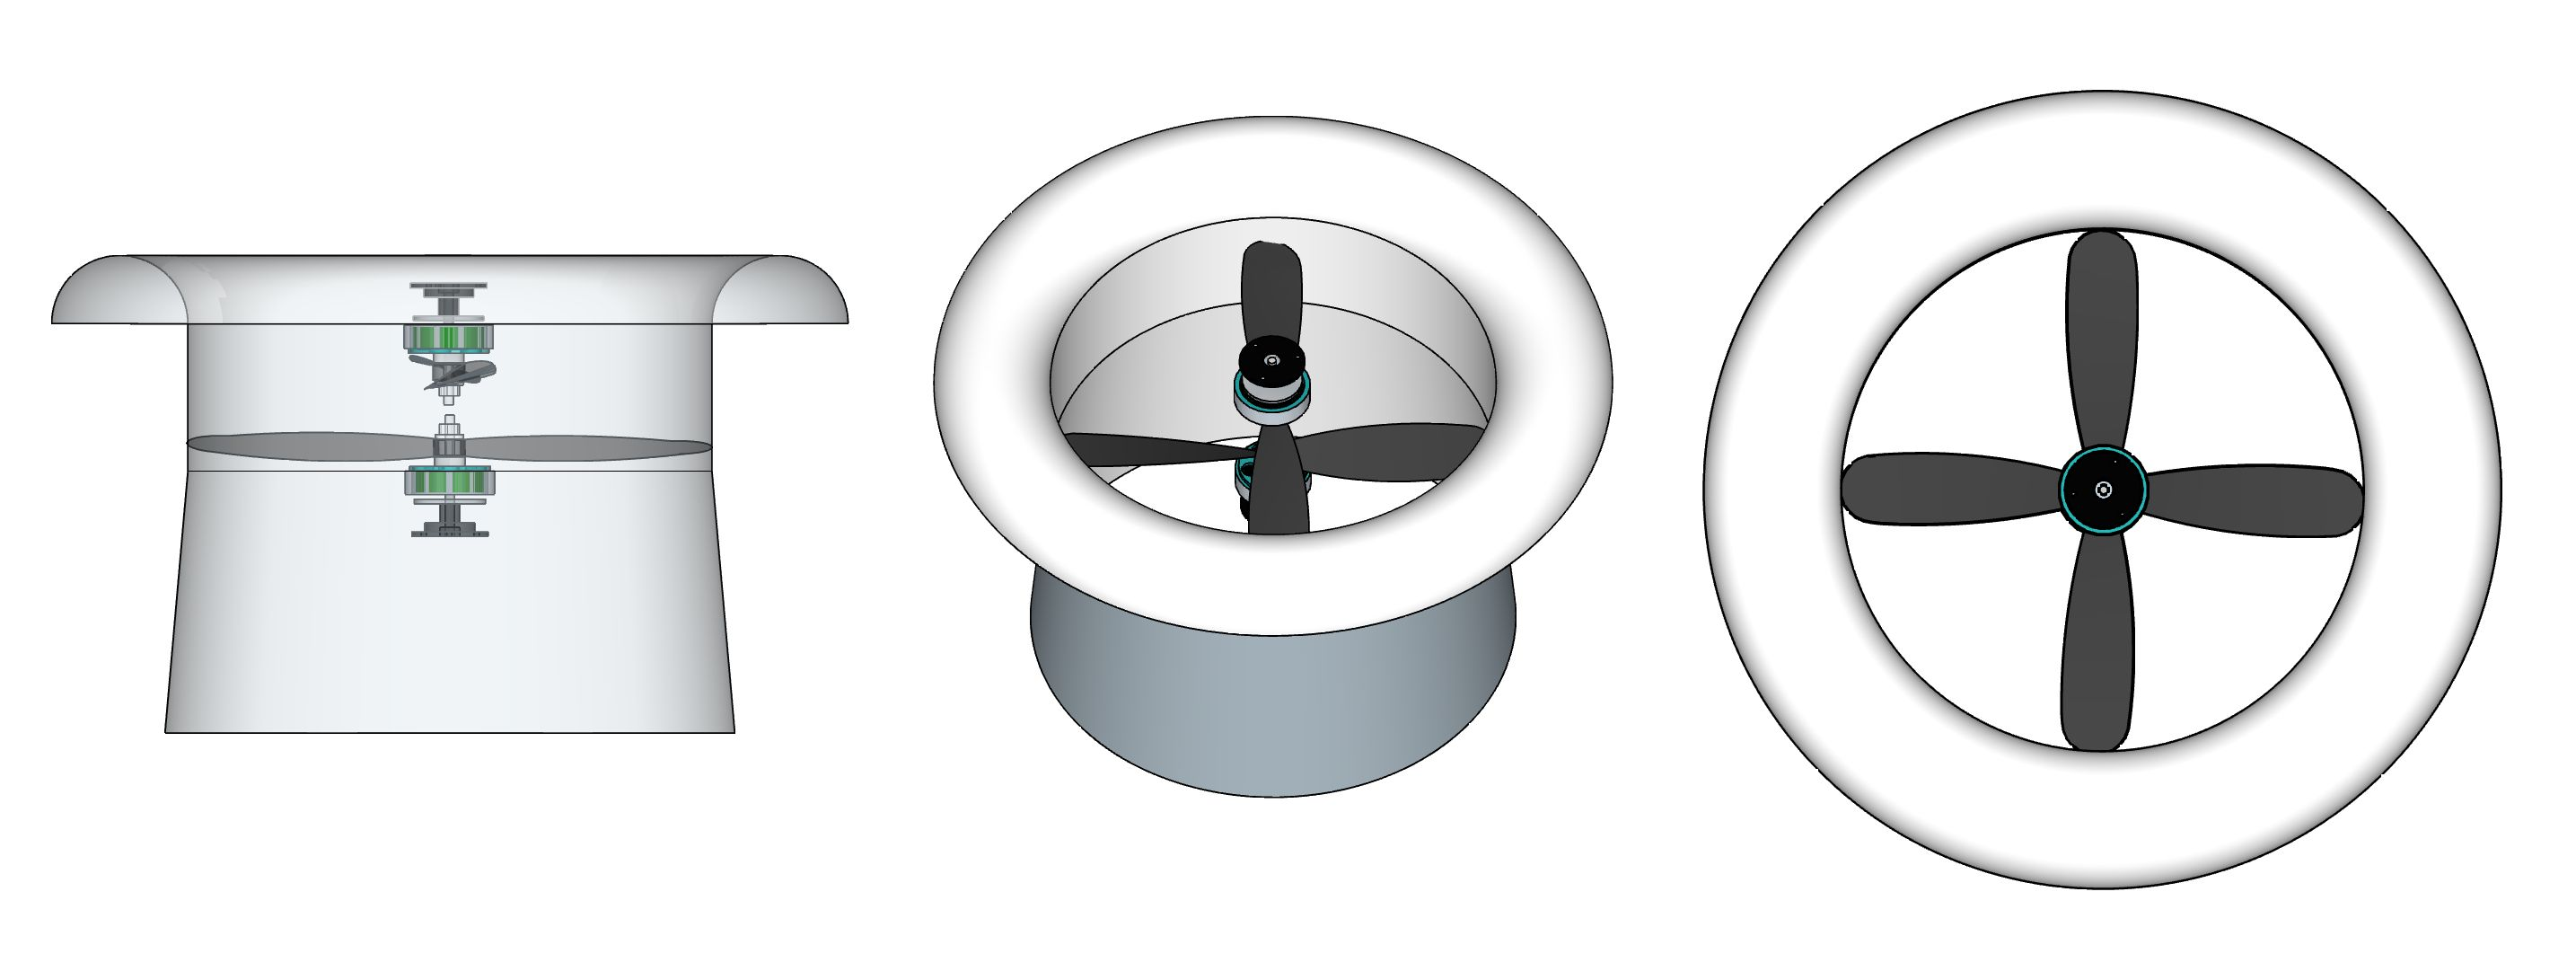 The ideal shape for a multirotor 'ducted-fan' that can dramatically